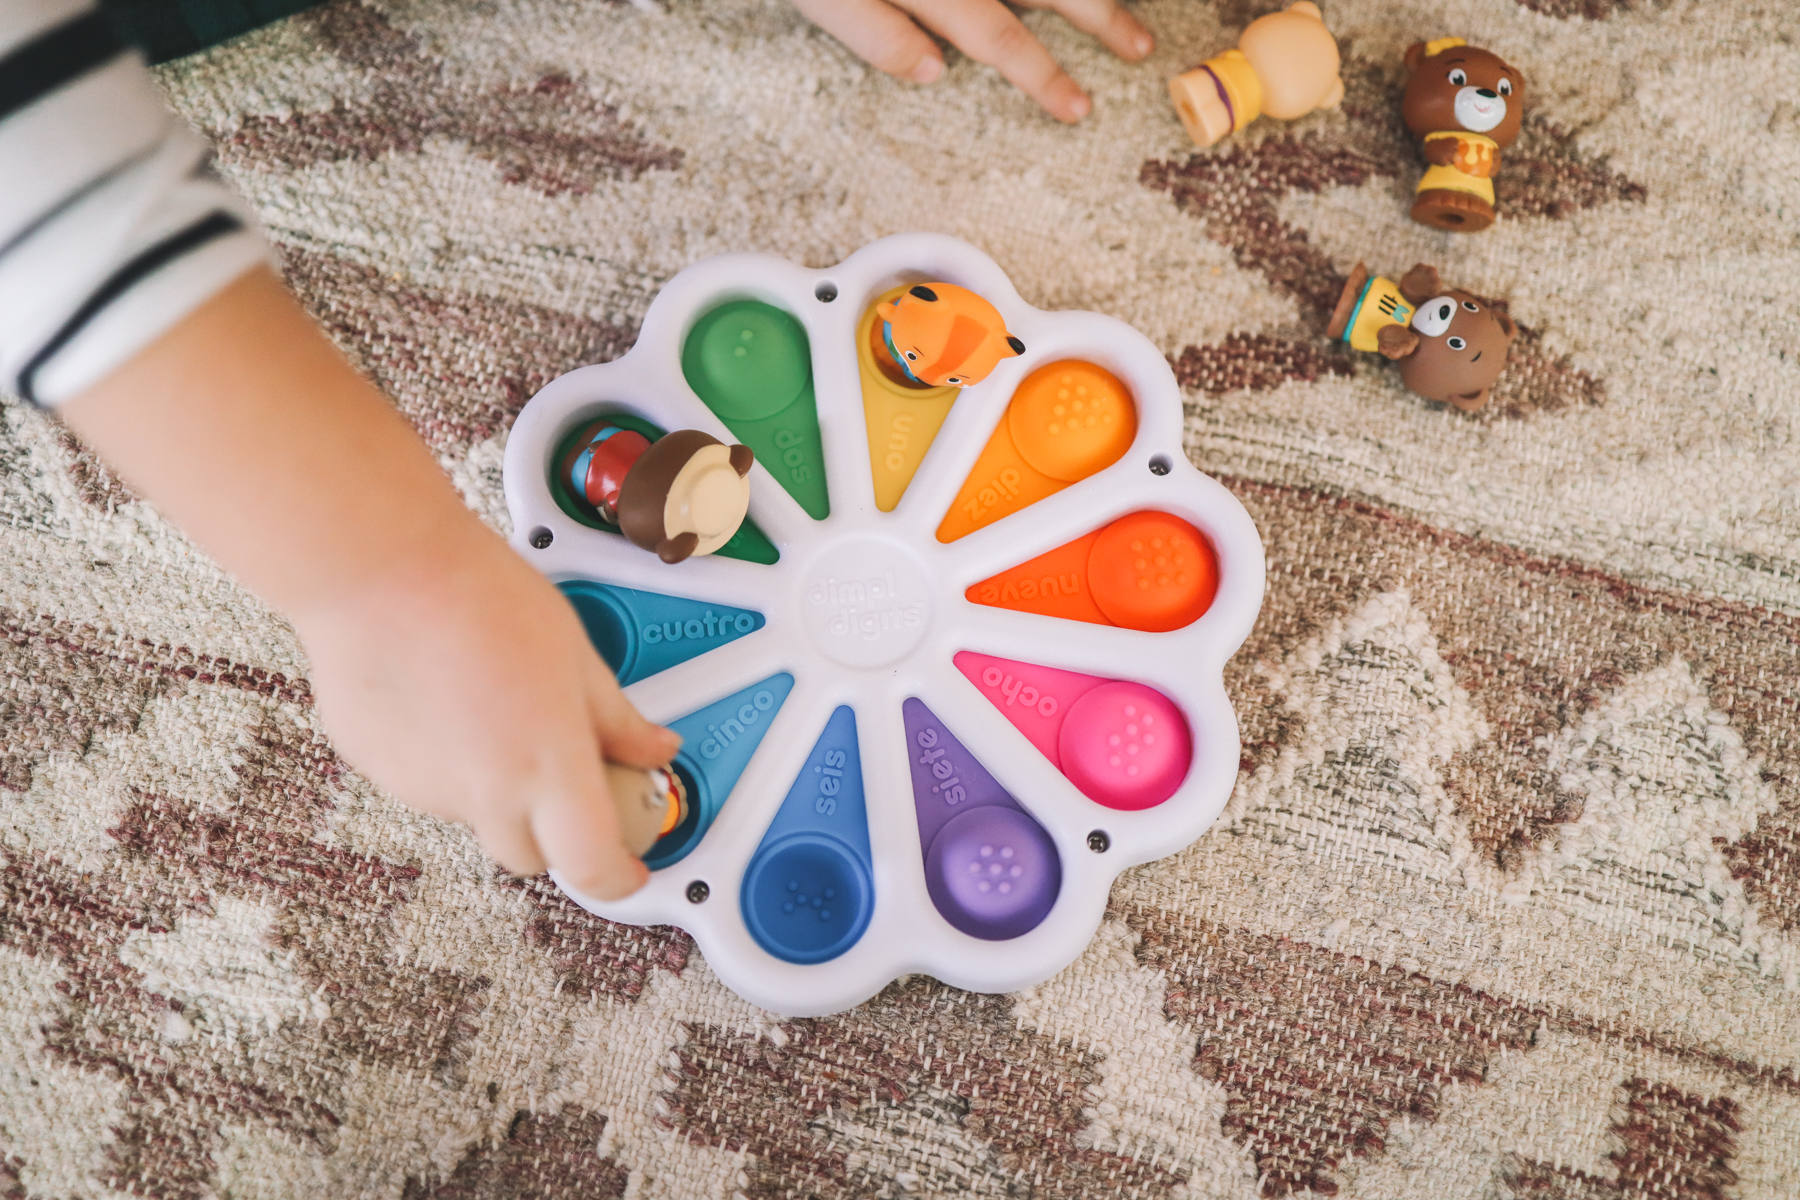 educational toy for kids